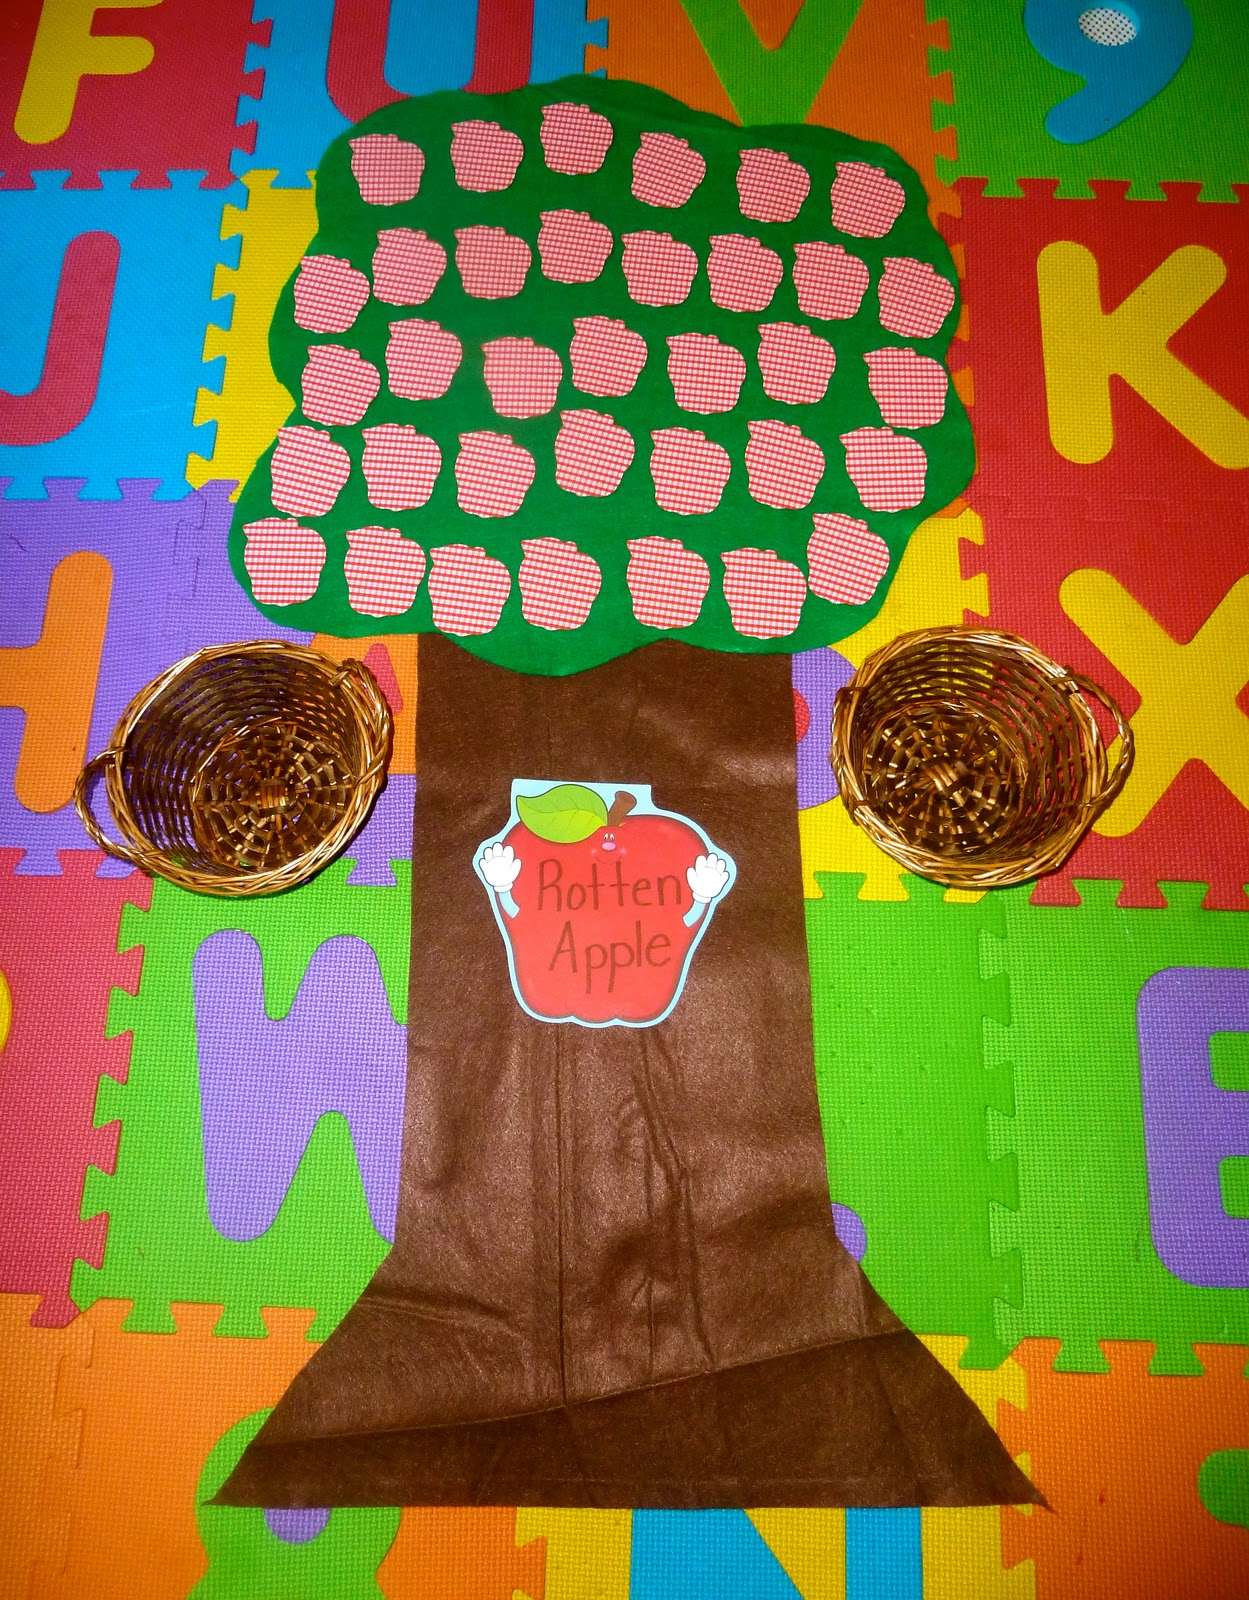 Rotten Apple A Sight Word Review Game